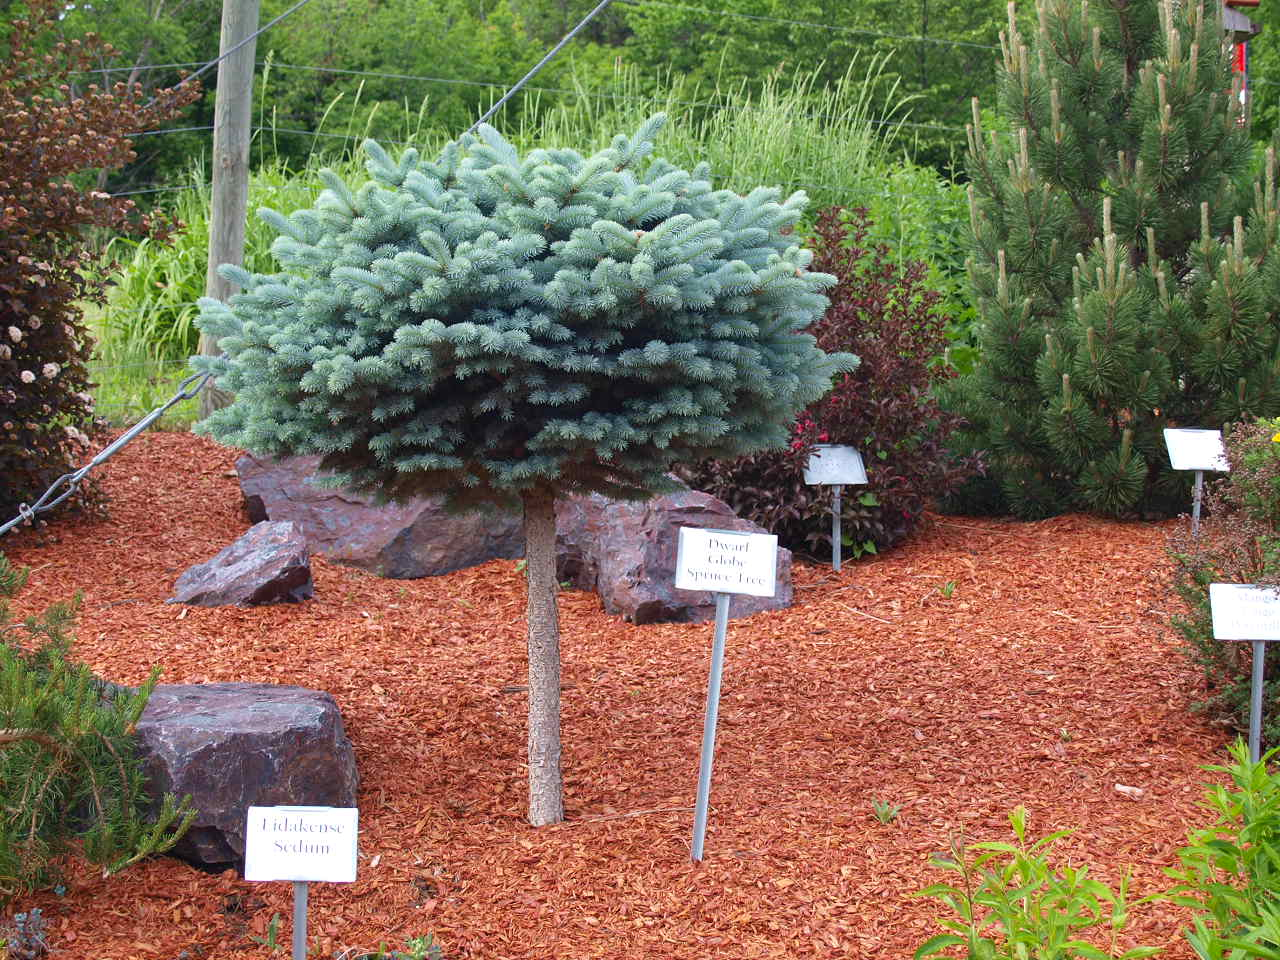 Dwarf globe blue spruce trees knecht 39 s nurseries for Small dwarf trees for landscaping